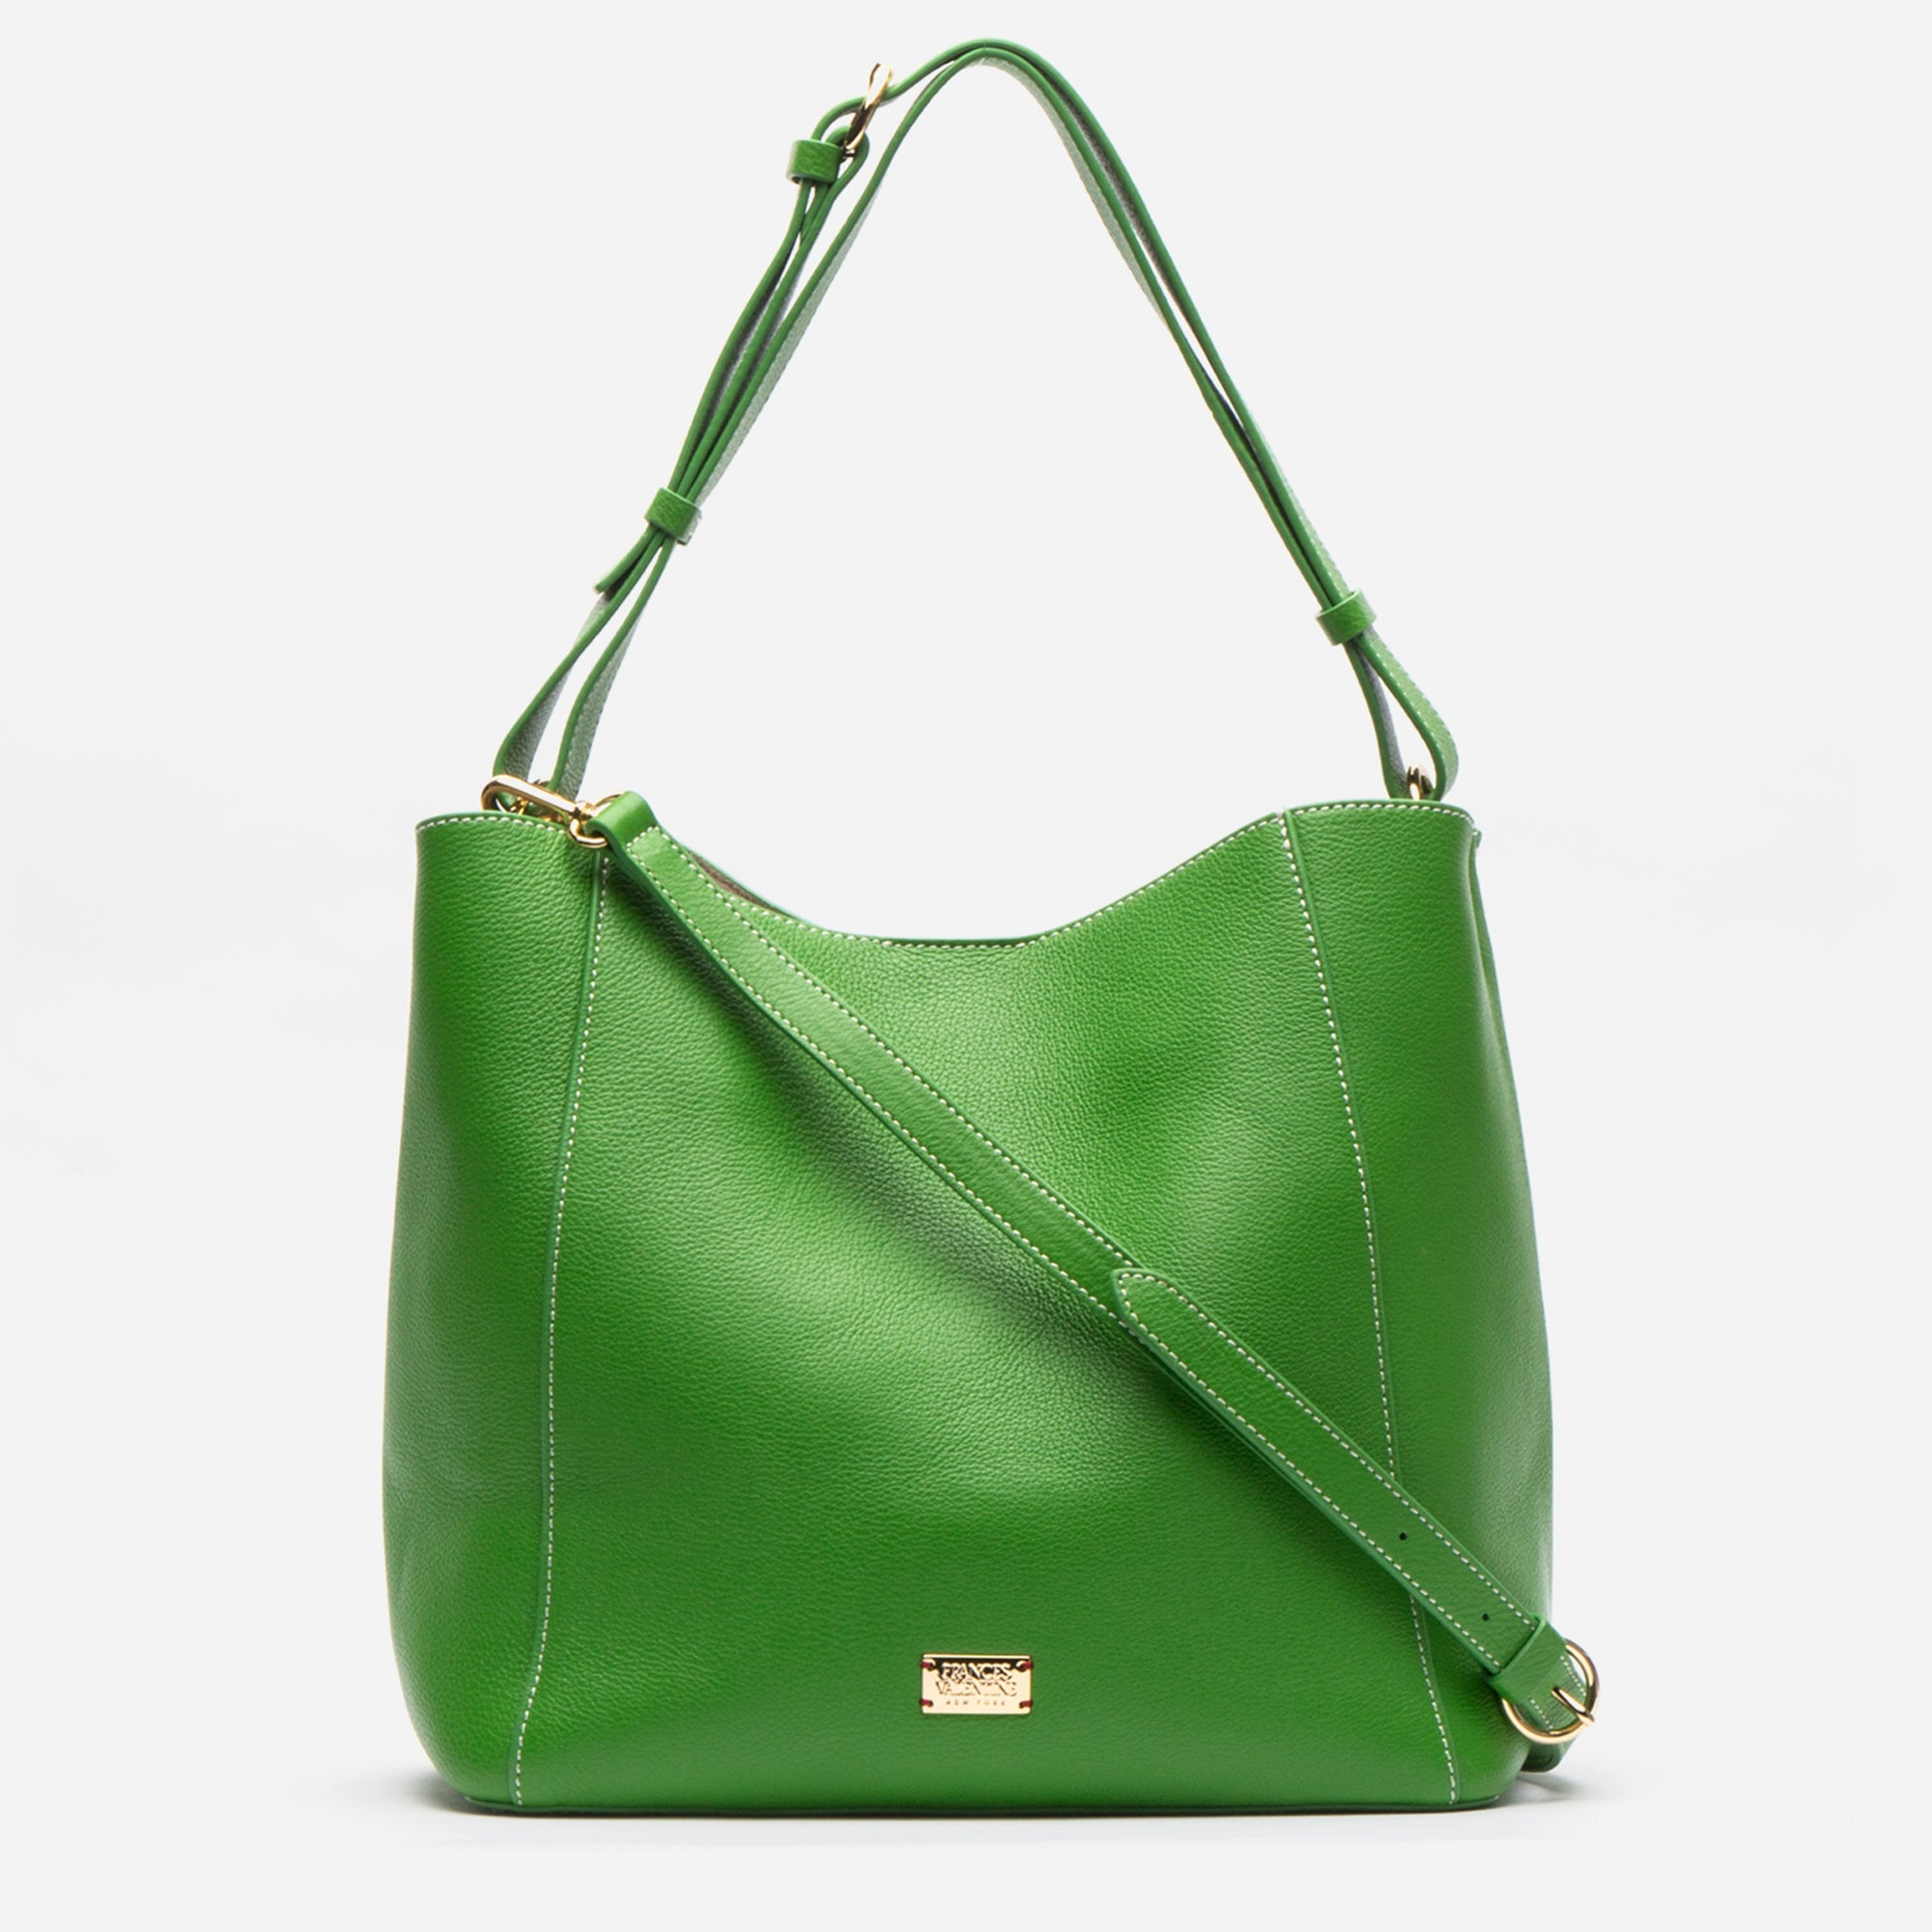 June Hobo Leather Shoulder Tote Grass - Frances Valentine